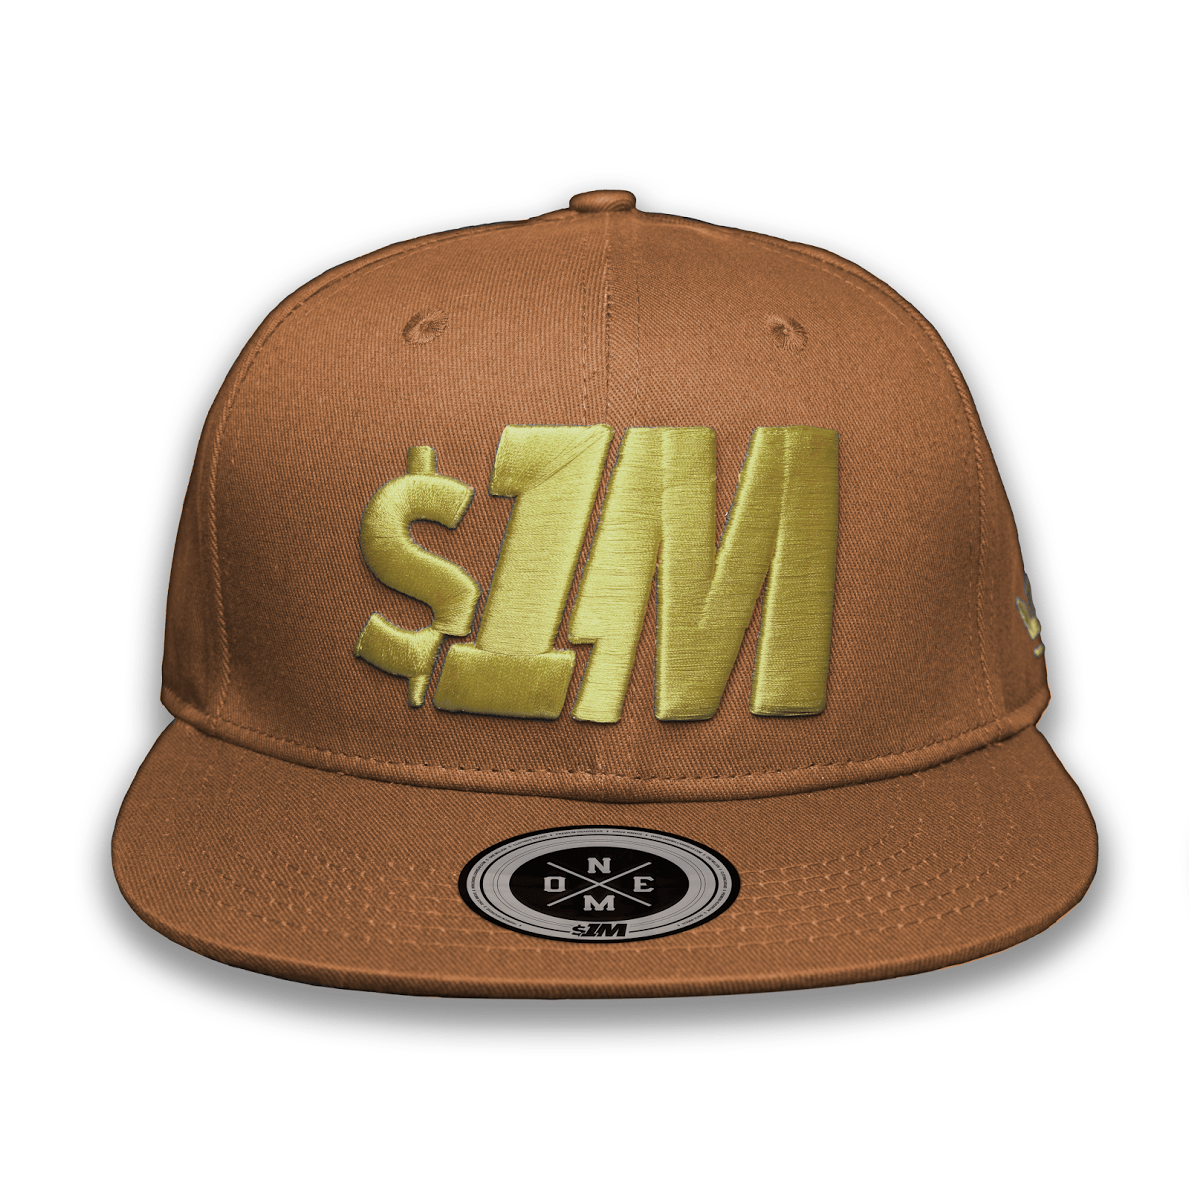 Gorra $1M Auténtica Brown/Gold - 1M Clothing Co.